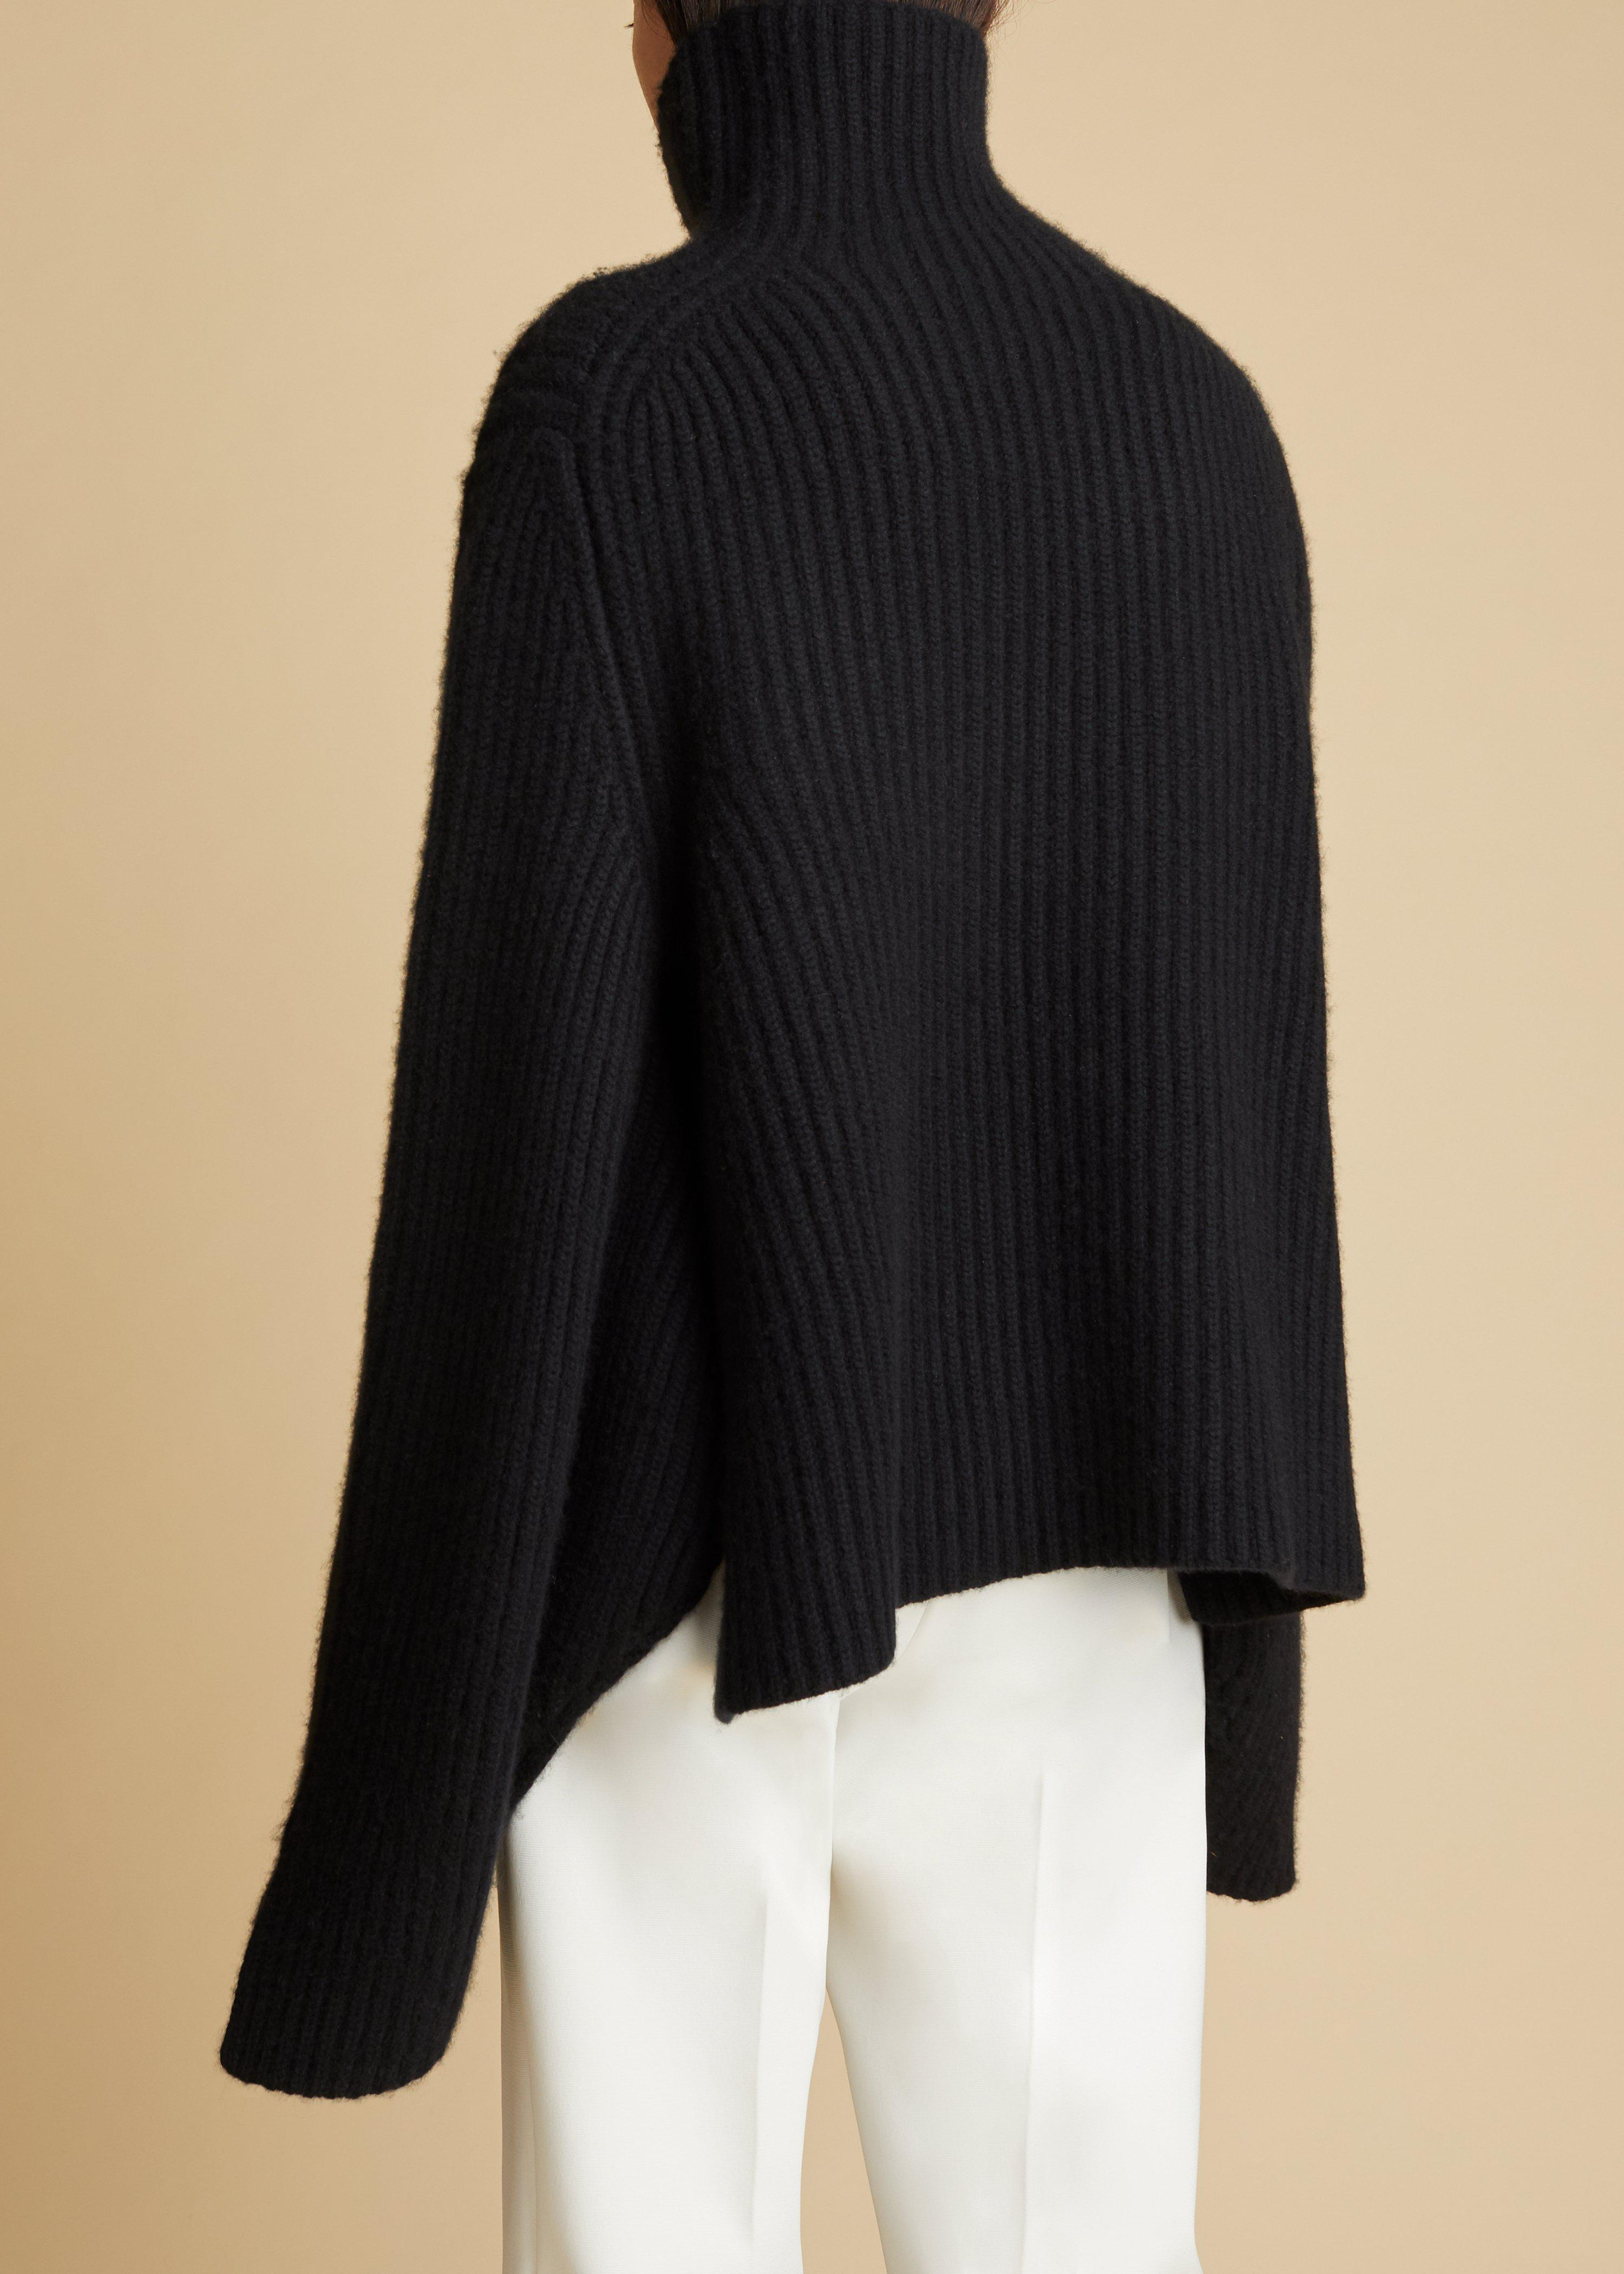 The Molly Sweater in Black 4